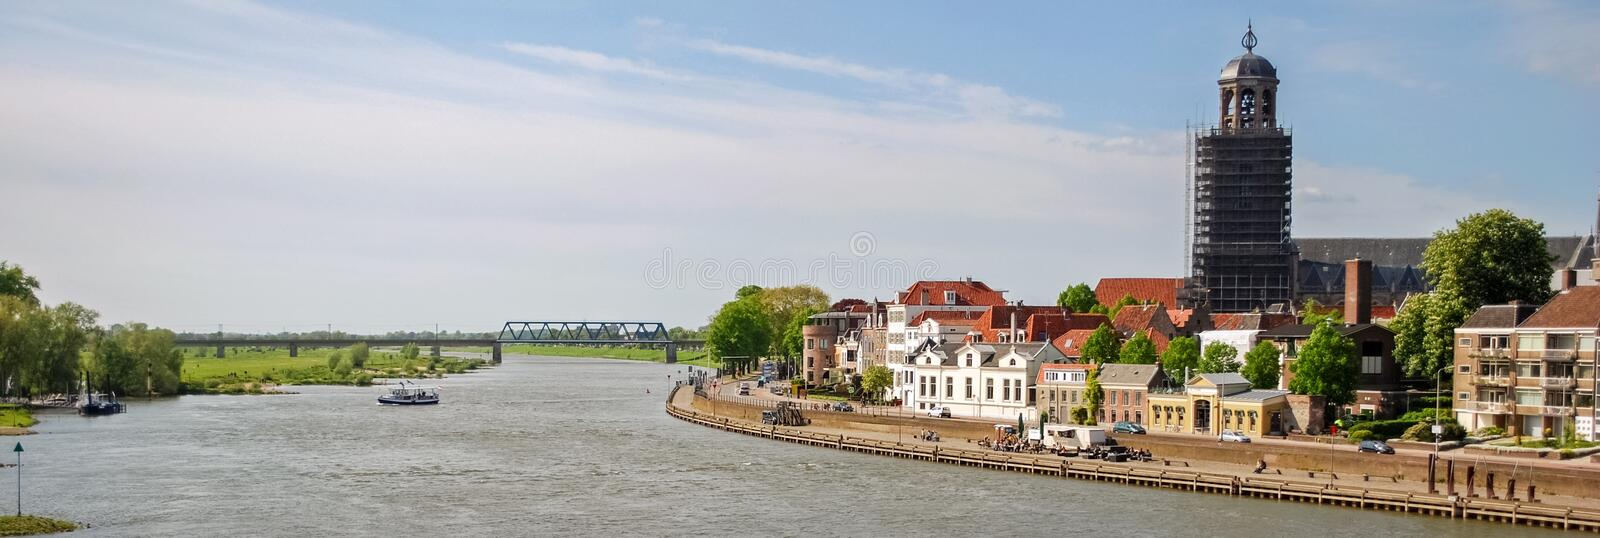 Looking across the river IJssel towards Deventer Overijssel, The Netherlands. Looking towards the town of Deventer Overijssel, The Netherlands. The city is stock photography